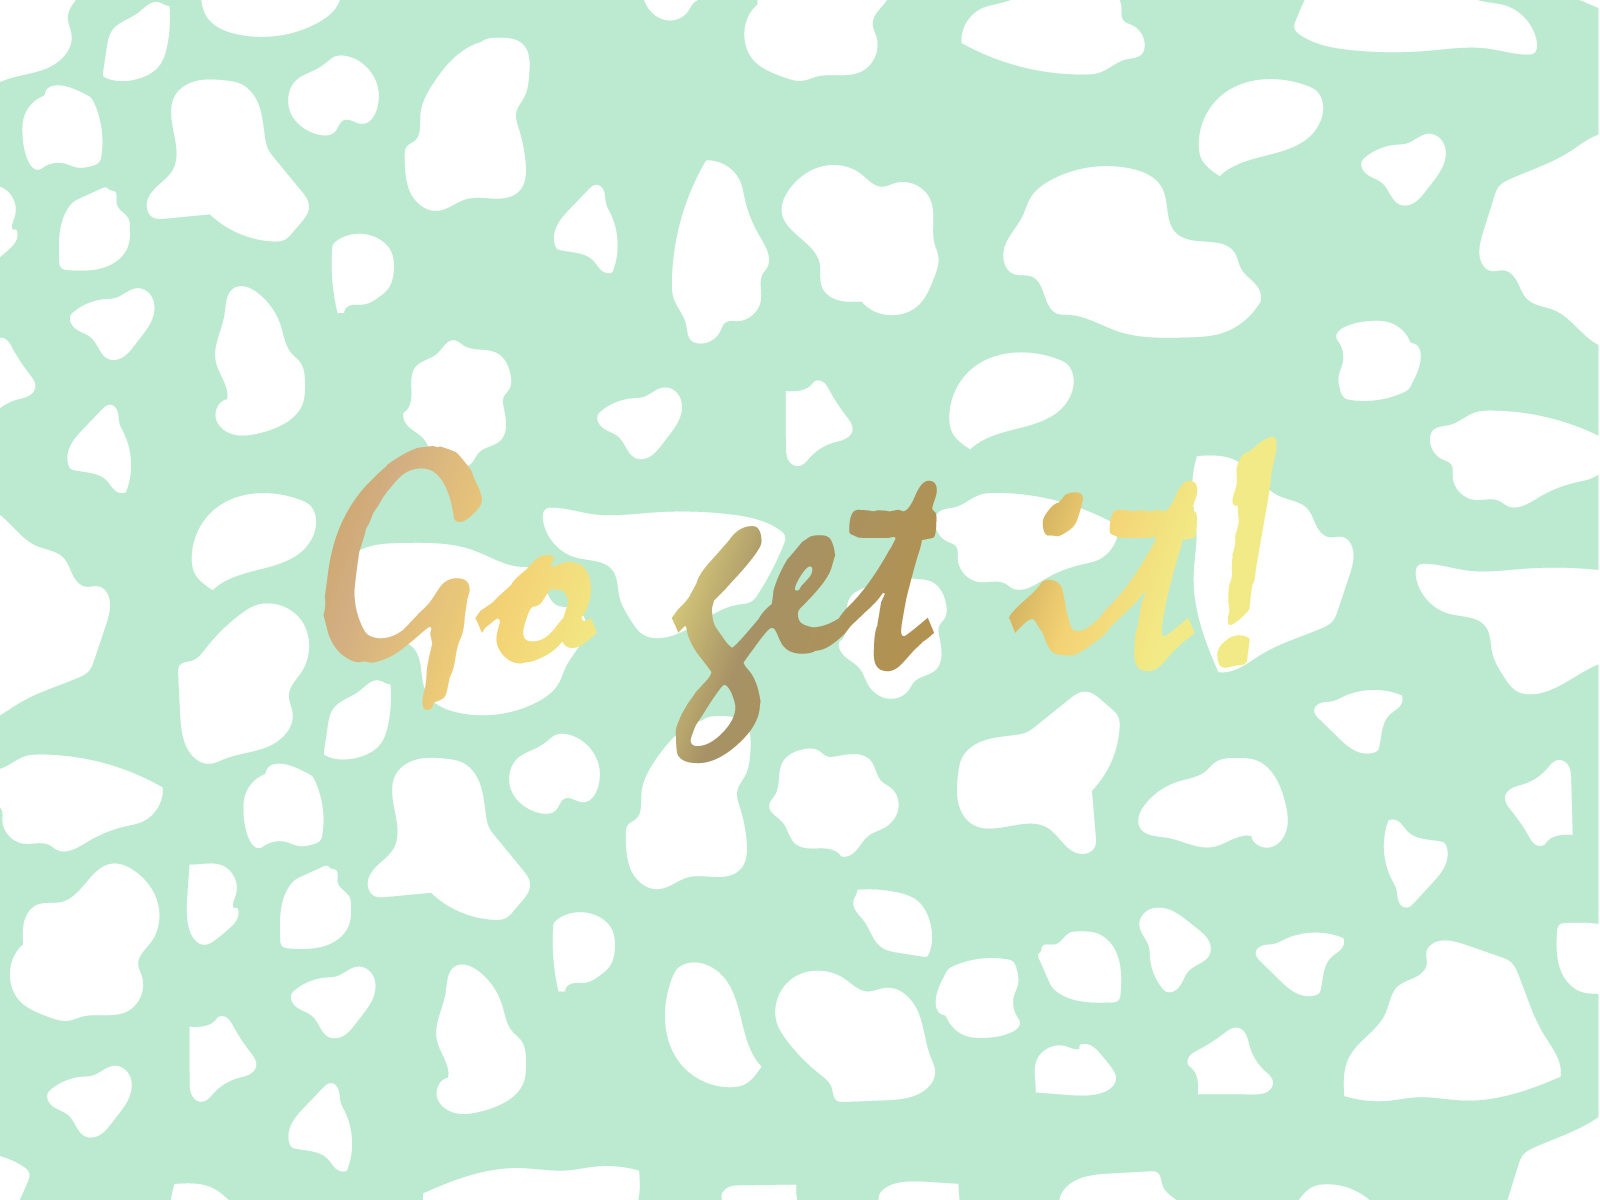 Mint gold Go get it desktop wallpaper background (With